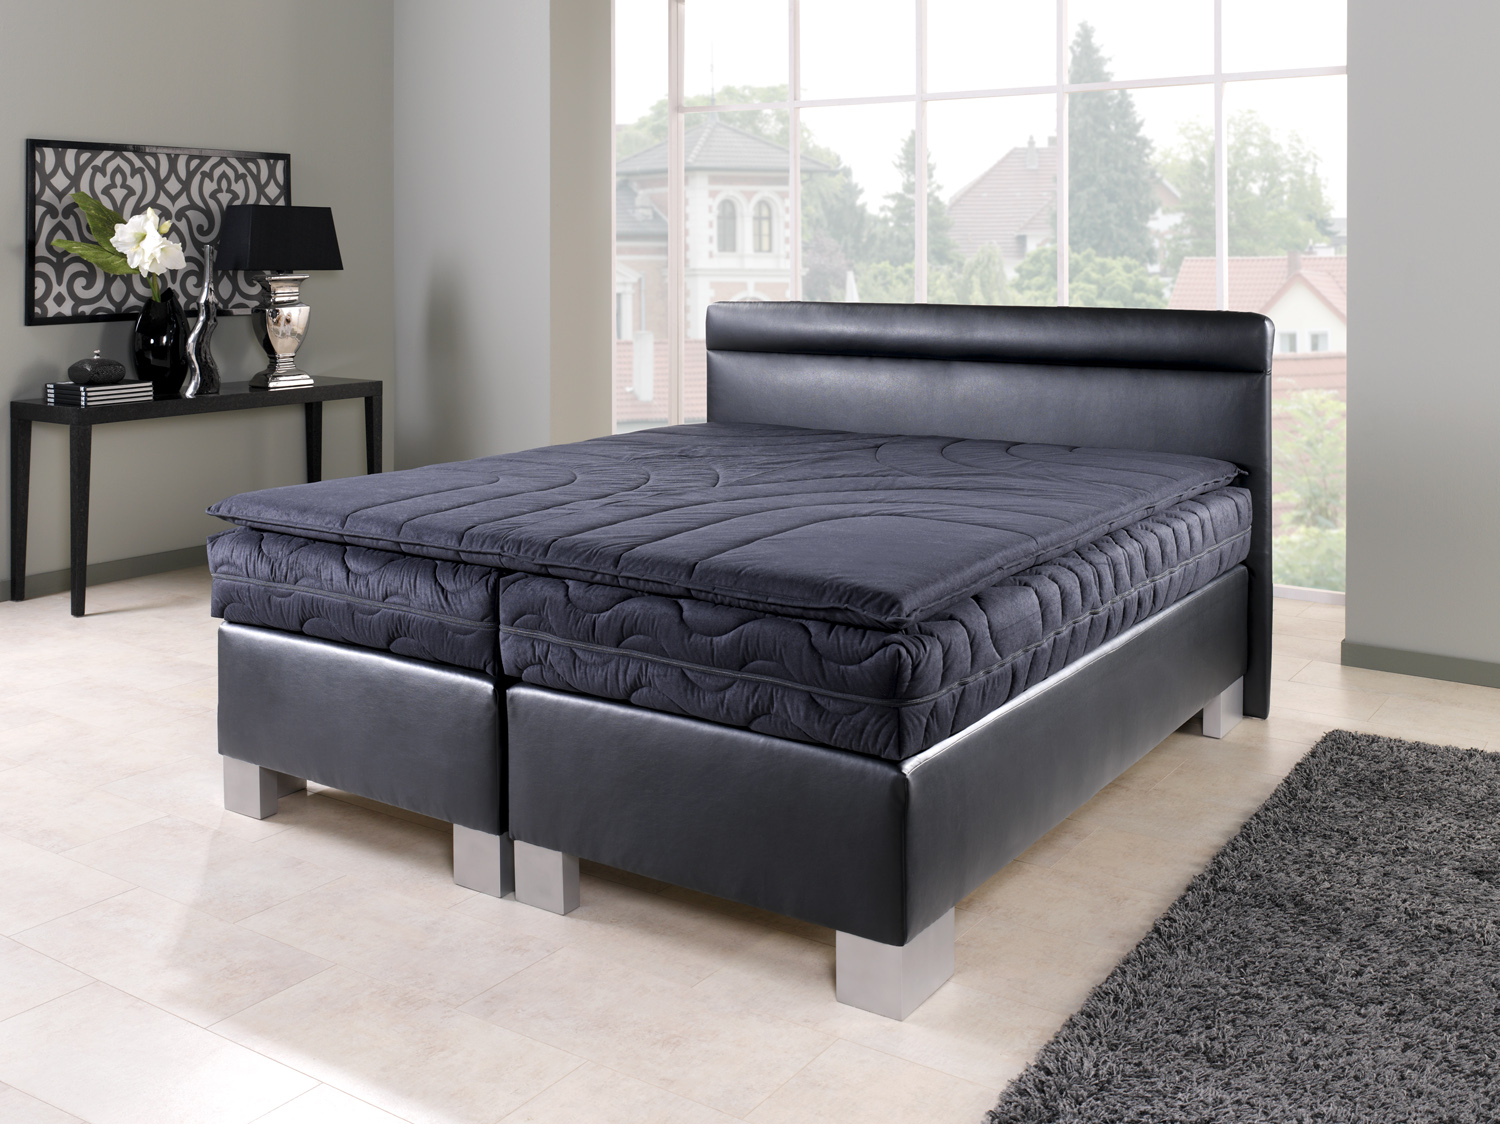 boxspringbett texas 100 120 140 160 180 200 cm x 200 cm ebay. Black Bedroom Furniture Sets. Home Design Ideas